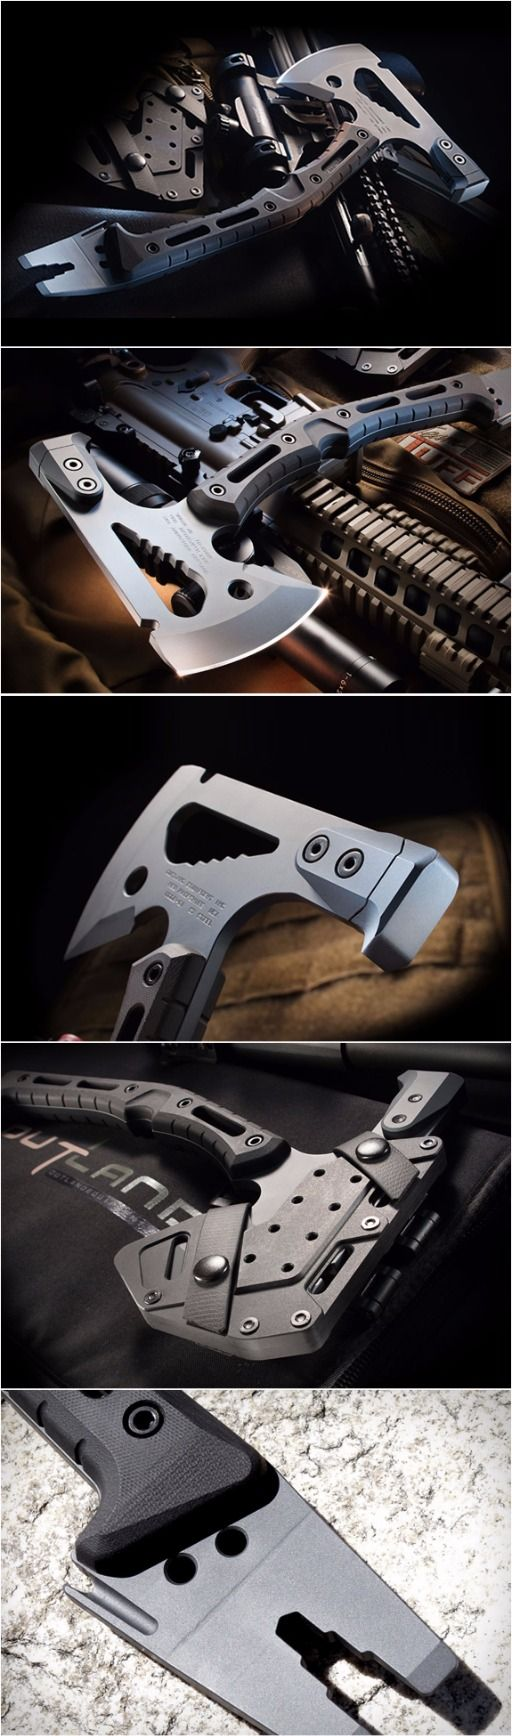 Outland Multi Mission Tactical Axe #axe @aegisgears